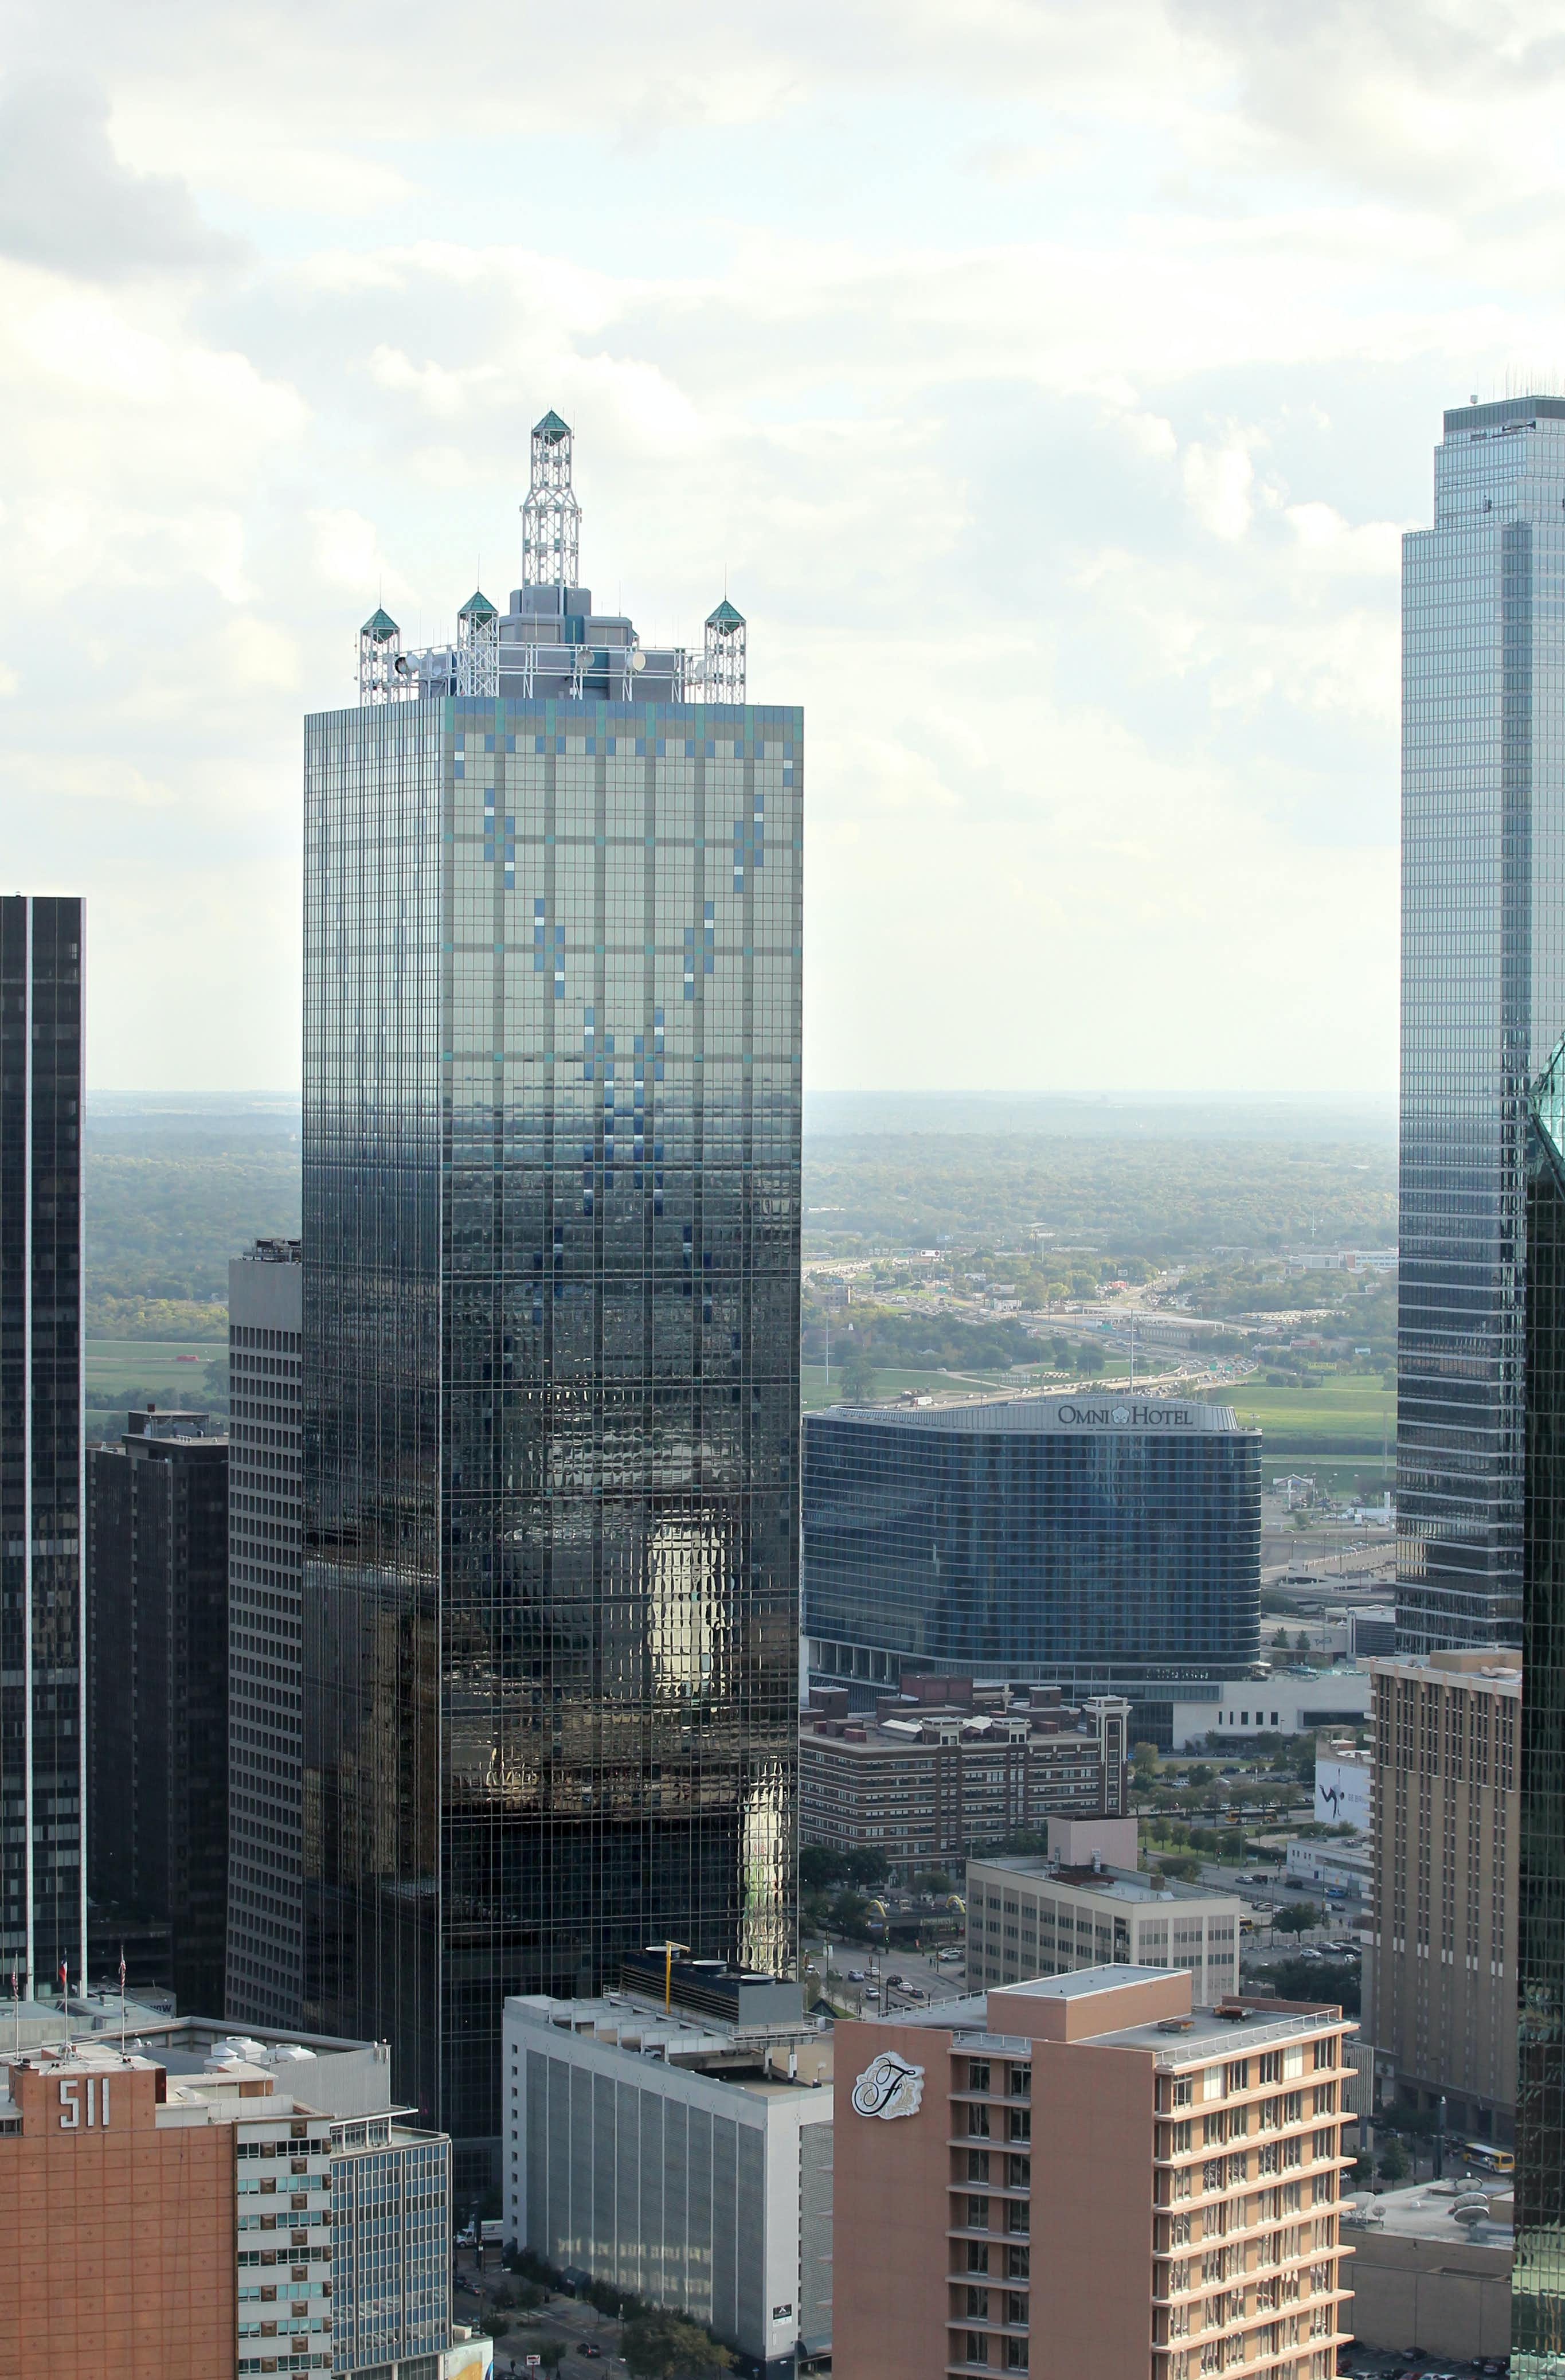 Renaissance Tower has more than 1.7 million square feet. (File Photo)